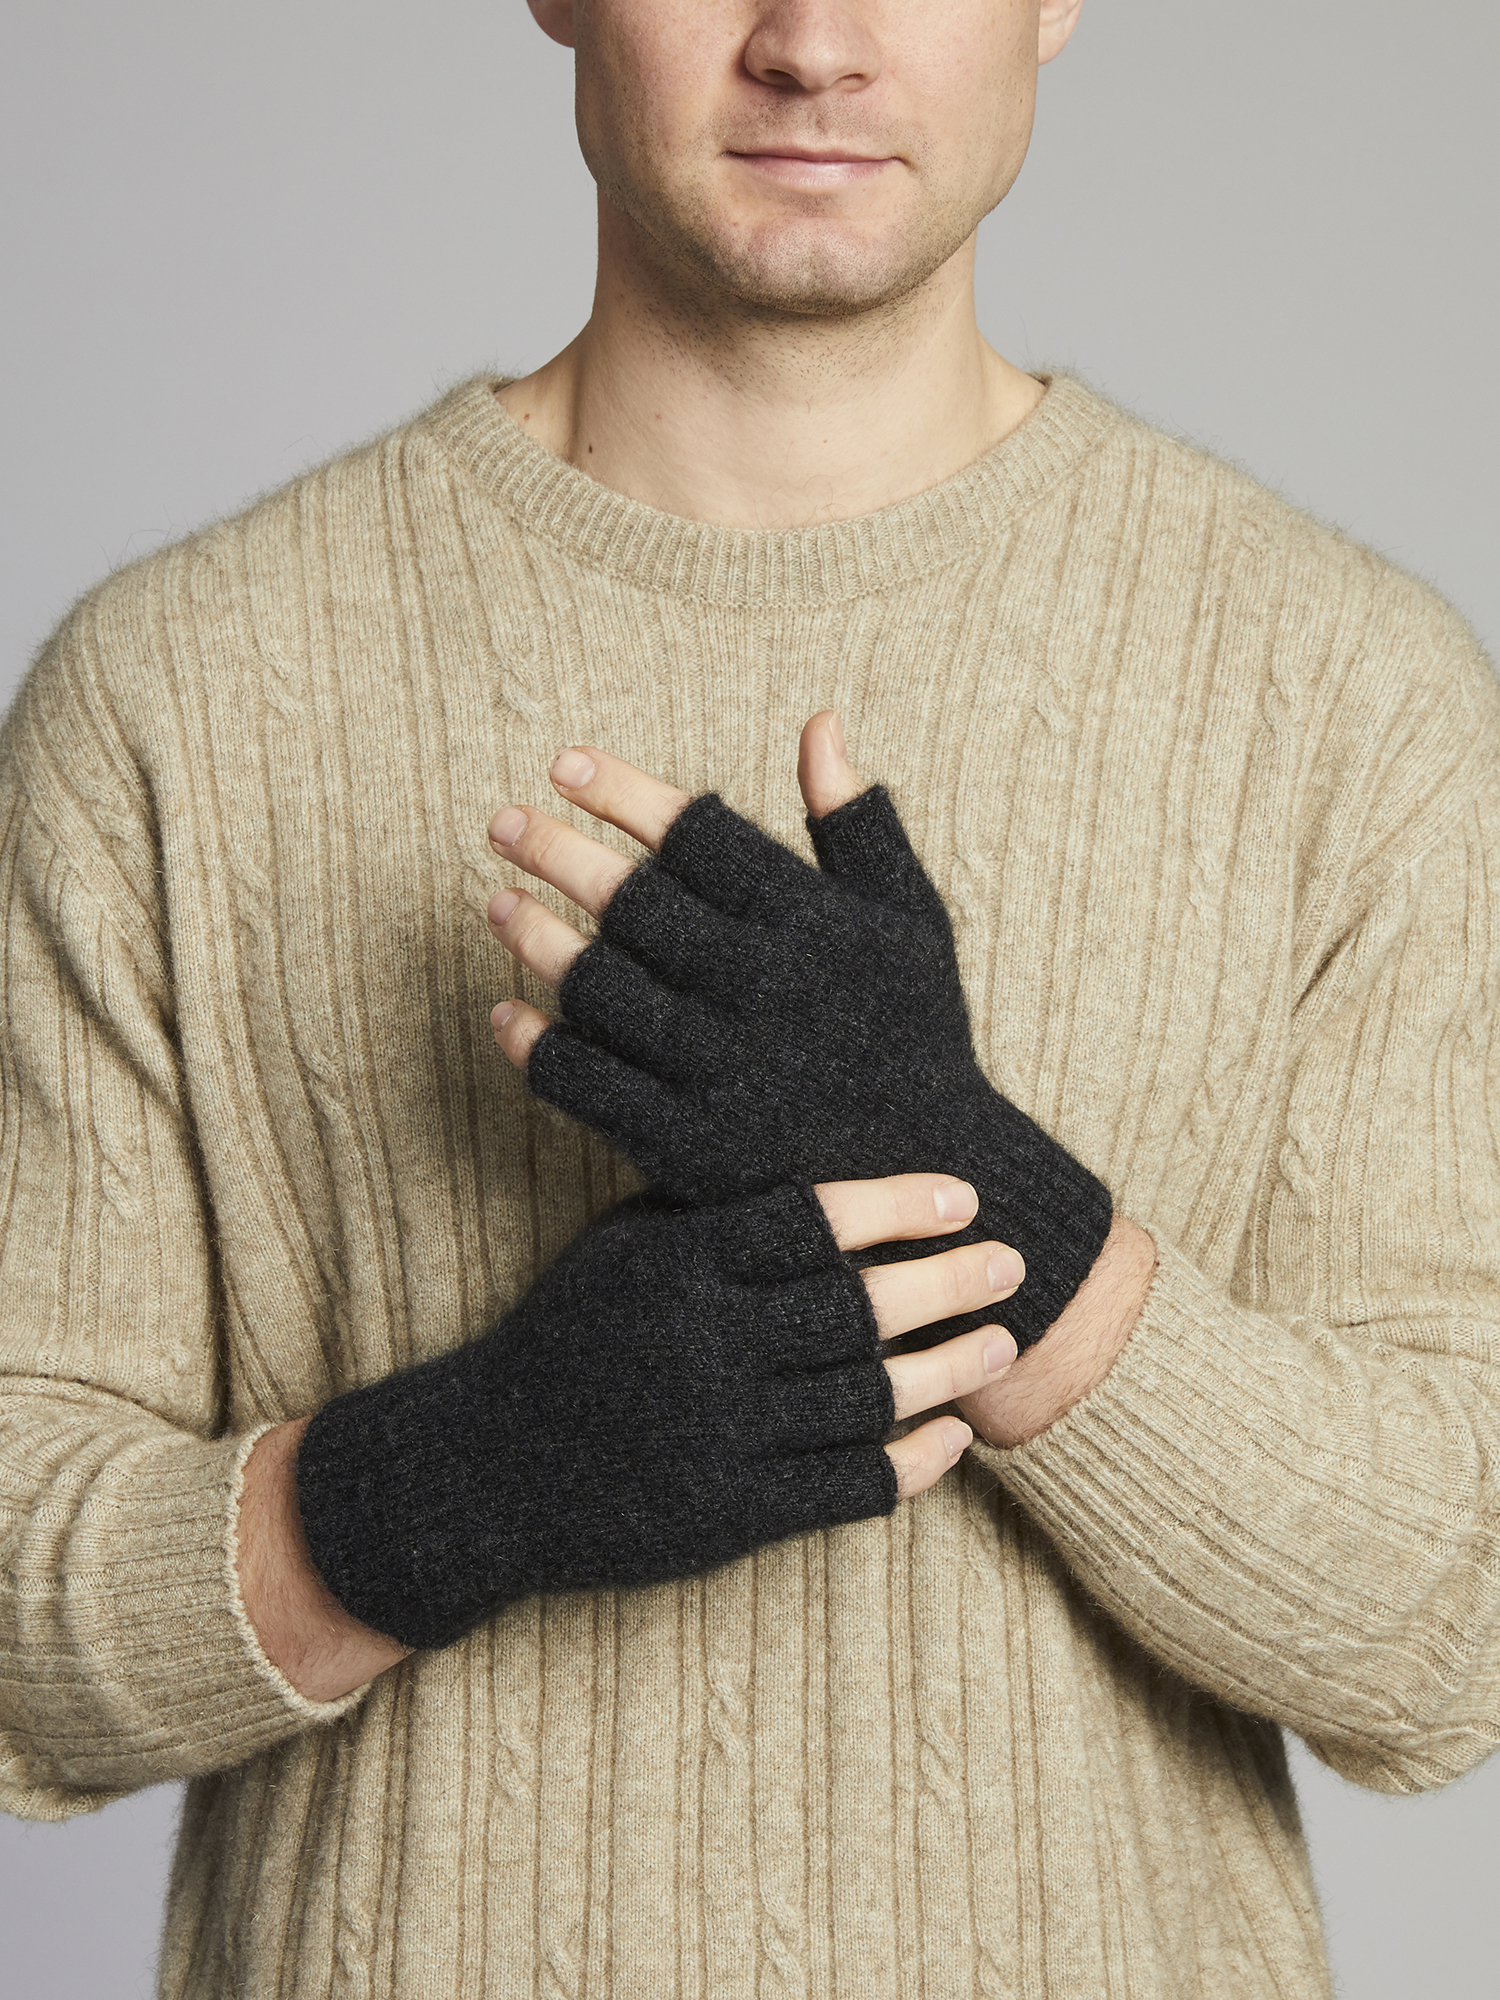 Merino / Possum Fingerless Glove - Charcoal